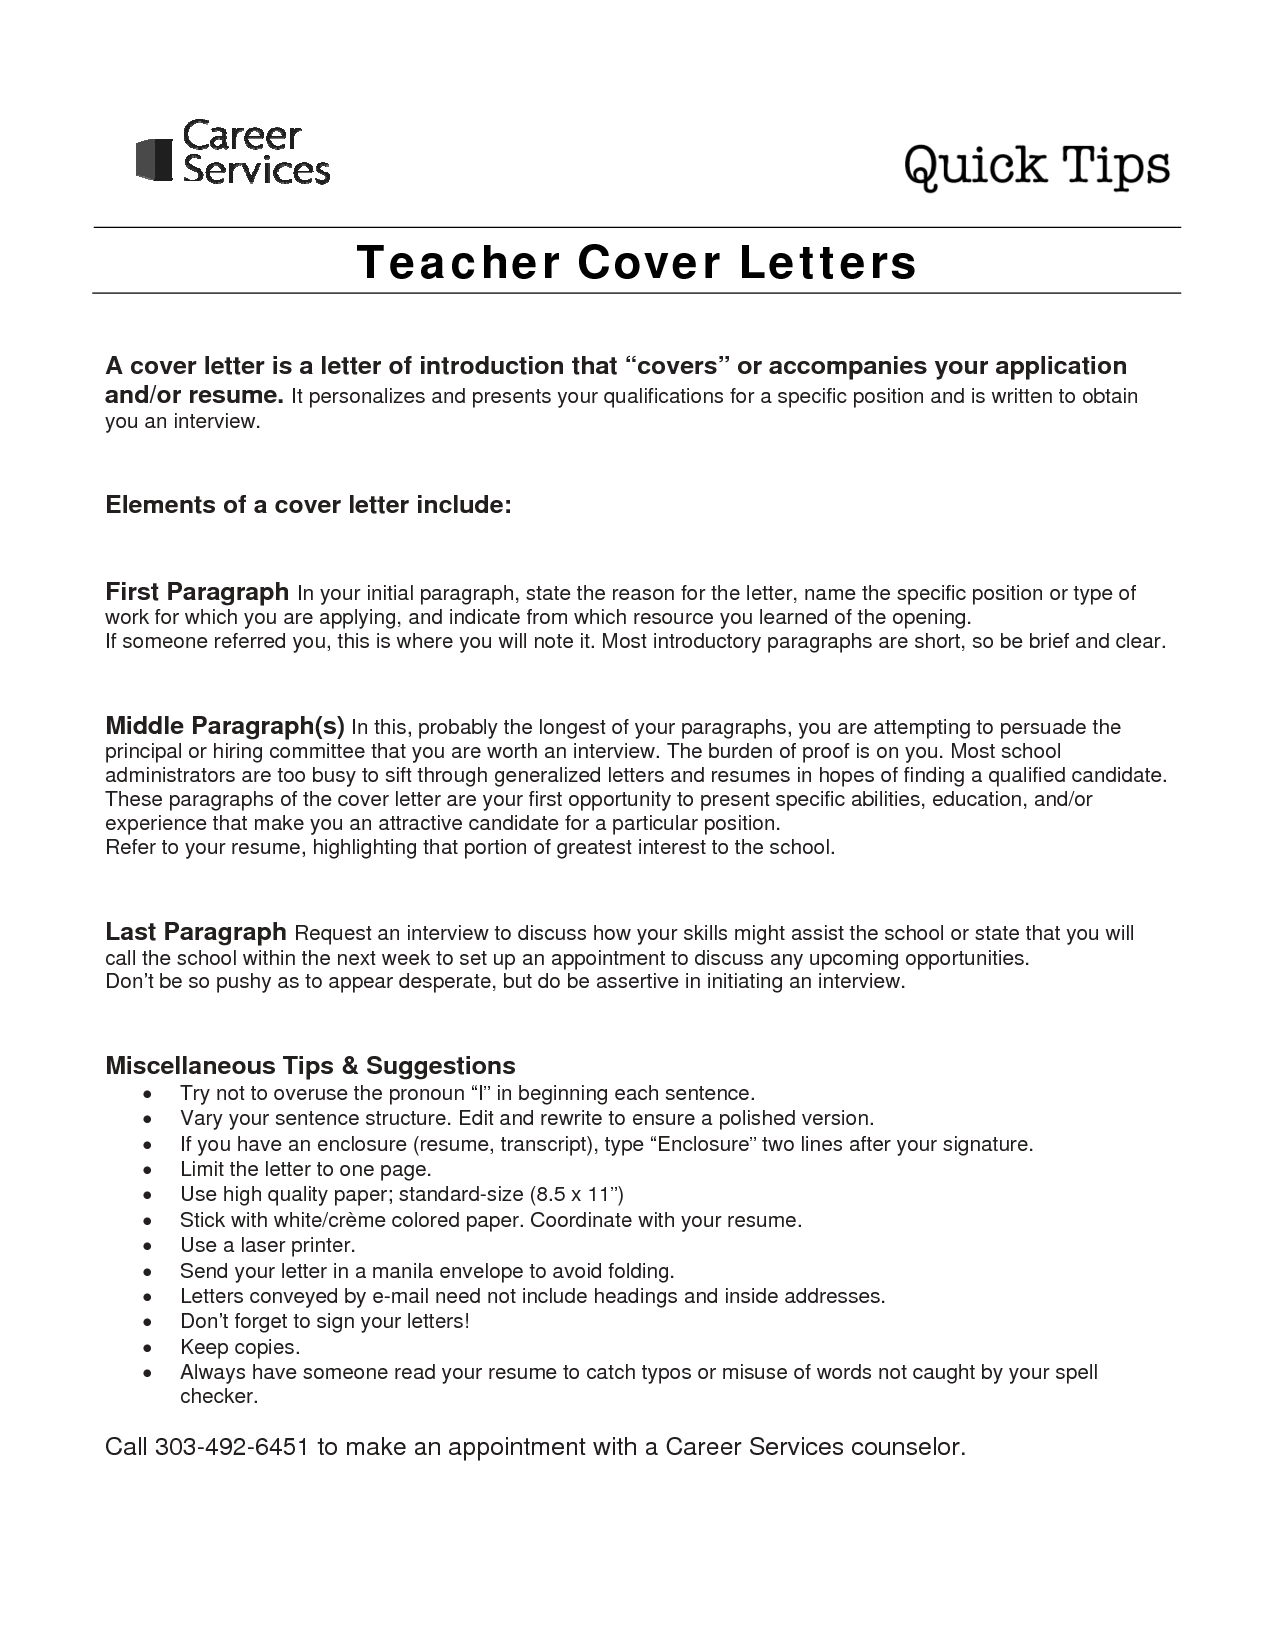 teacher resume and cover letter examples teaching teachers a75b35101110f67f80c084d6cc142cfa 74872412534434275